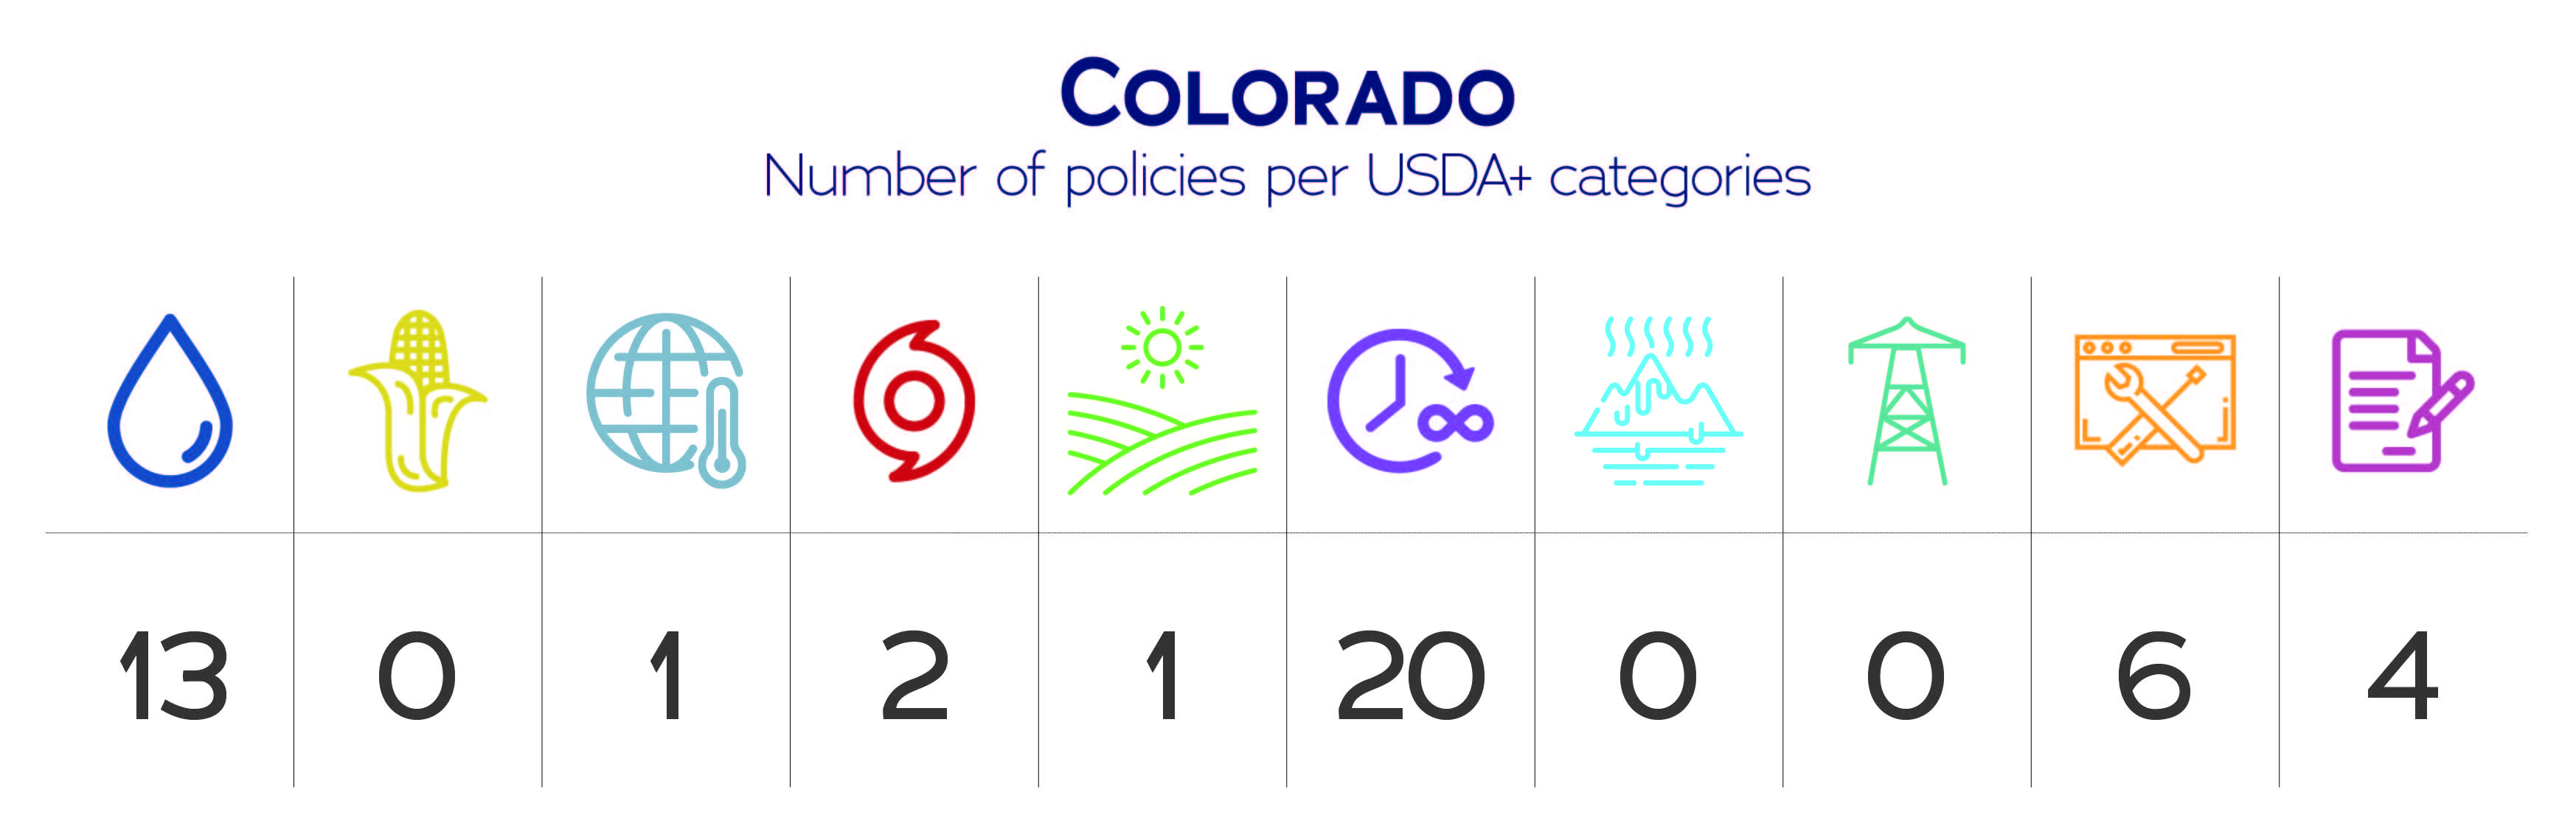 Colorado USDA+ category data